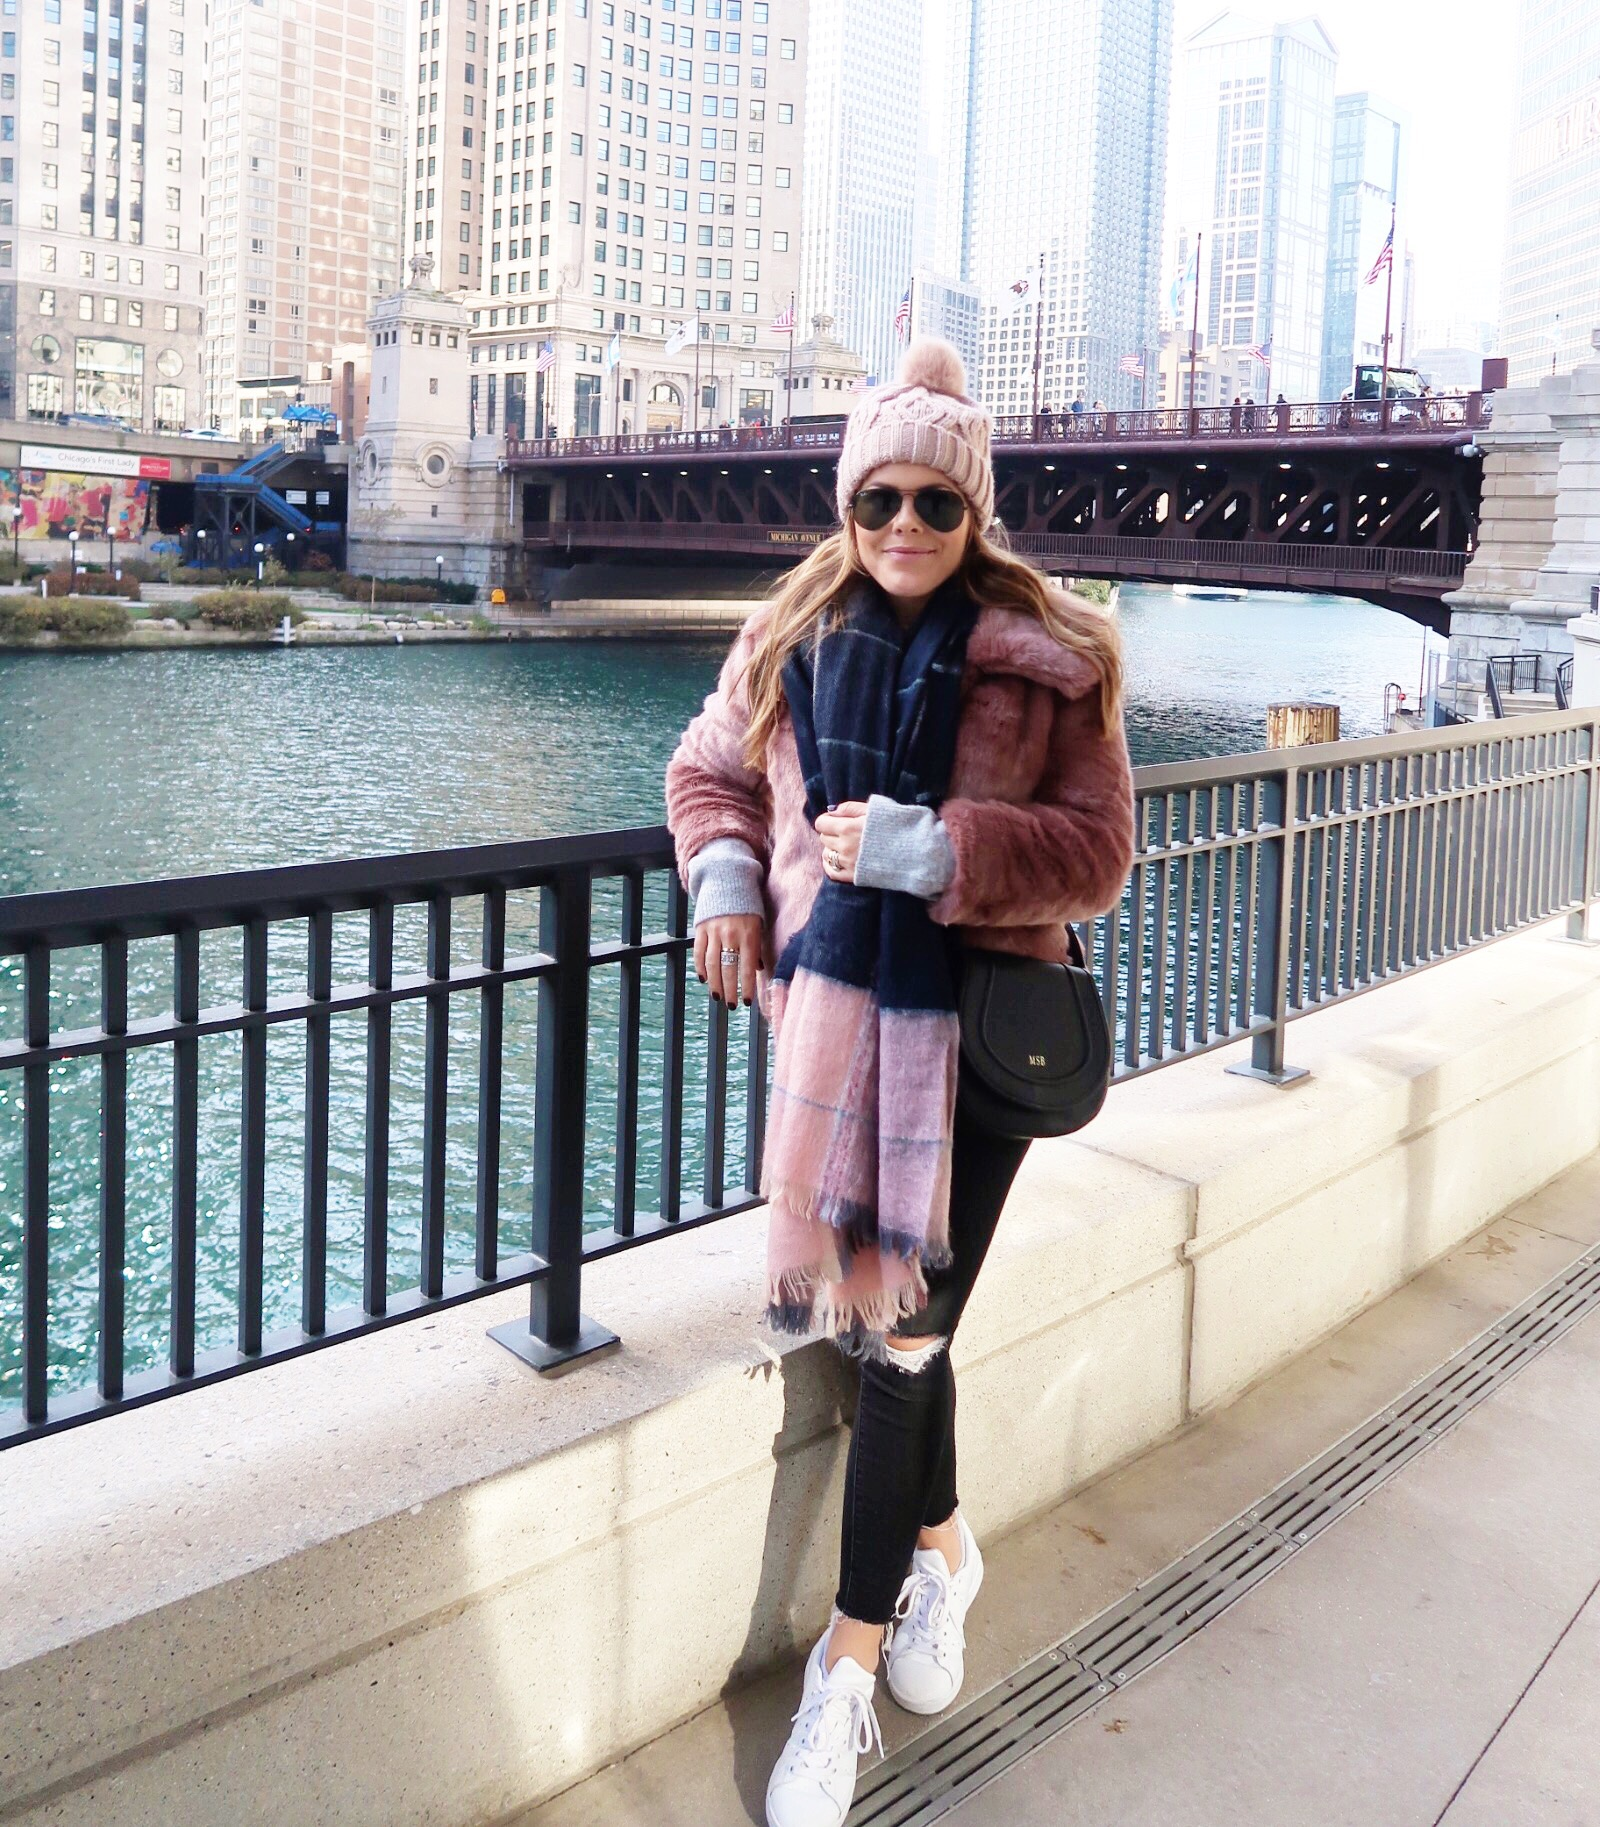 Chicago Winter Travel Guide / What to do in Chicago in the winter